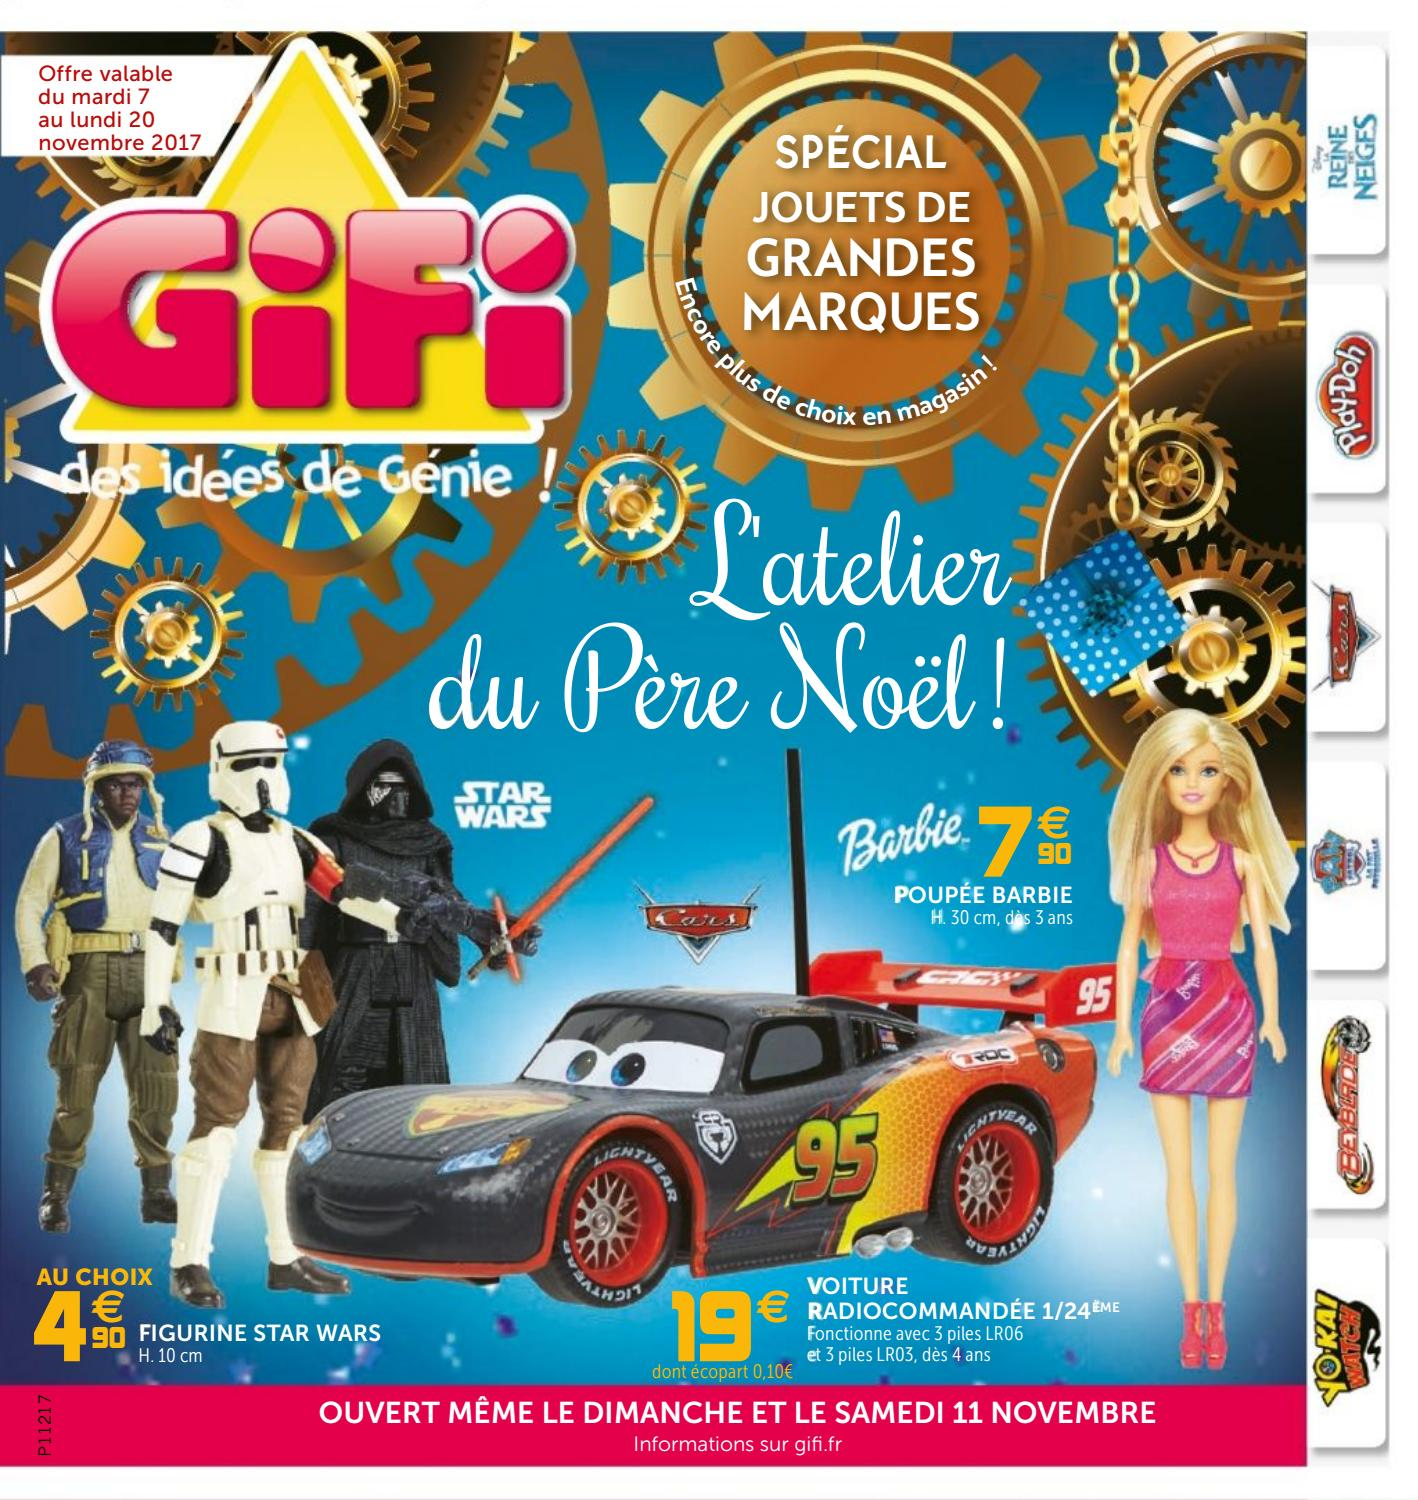 Jouets Noël 2017 Catalogue Yvernault By Issuu Gifi 3FcJK1Tl